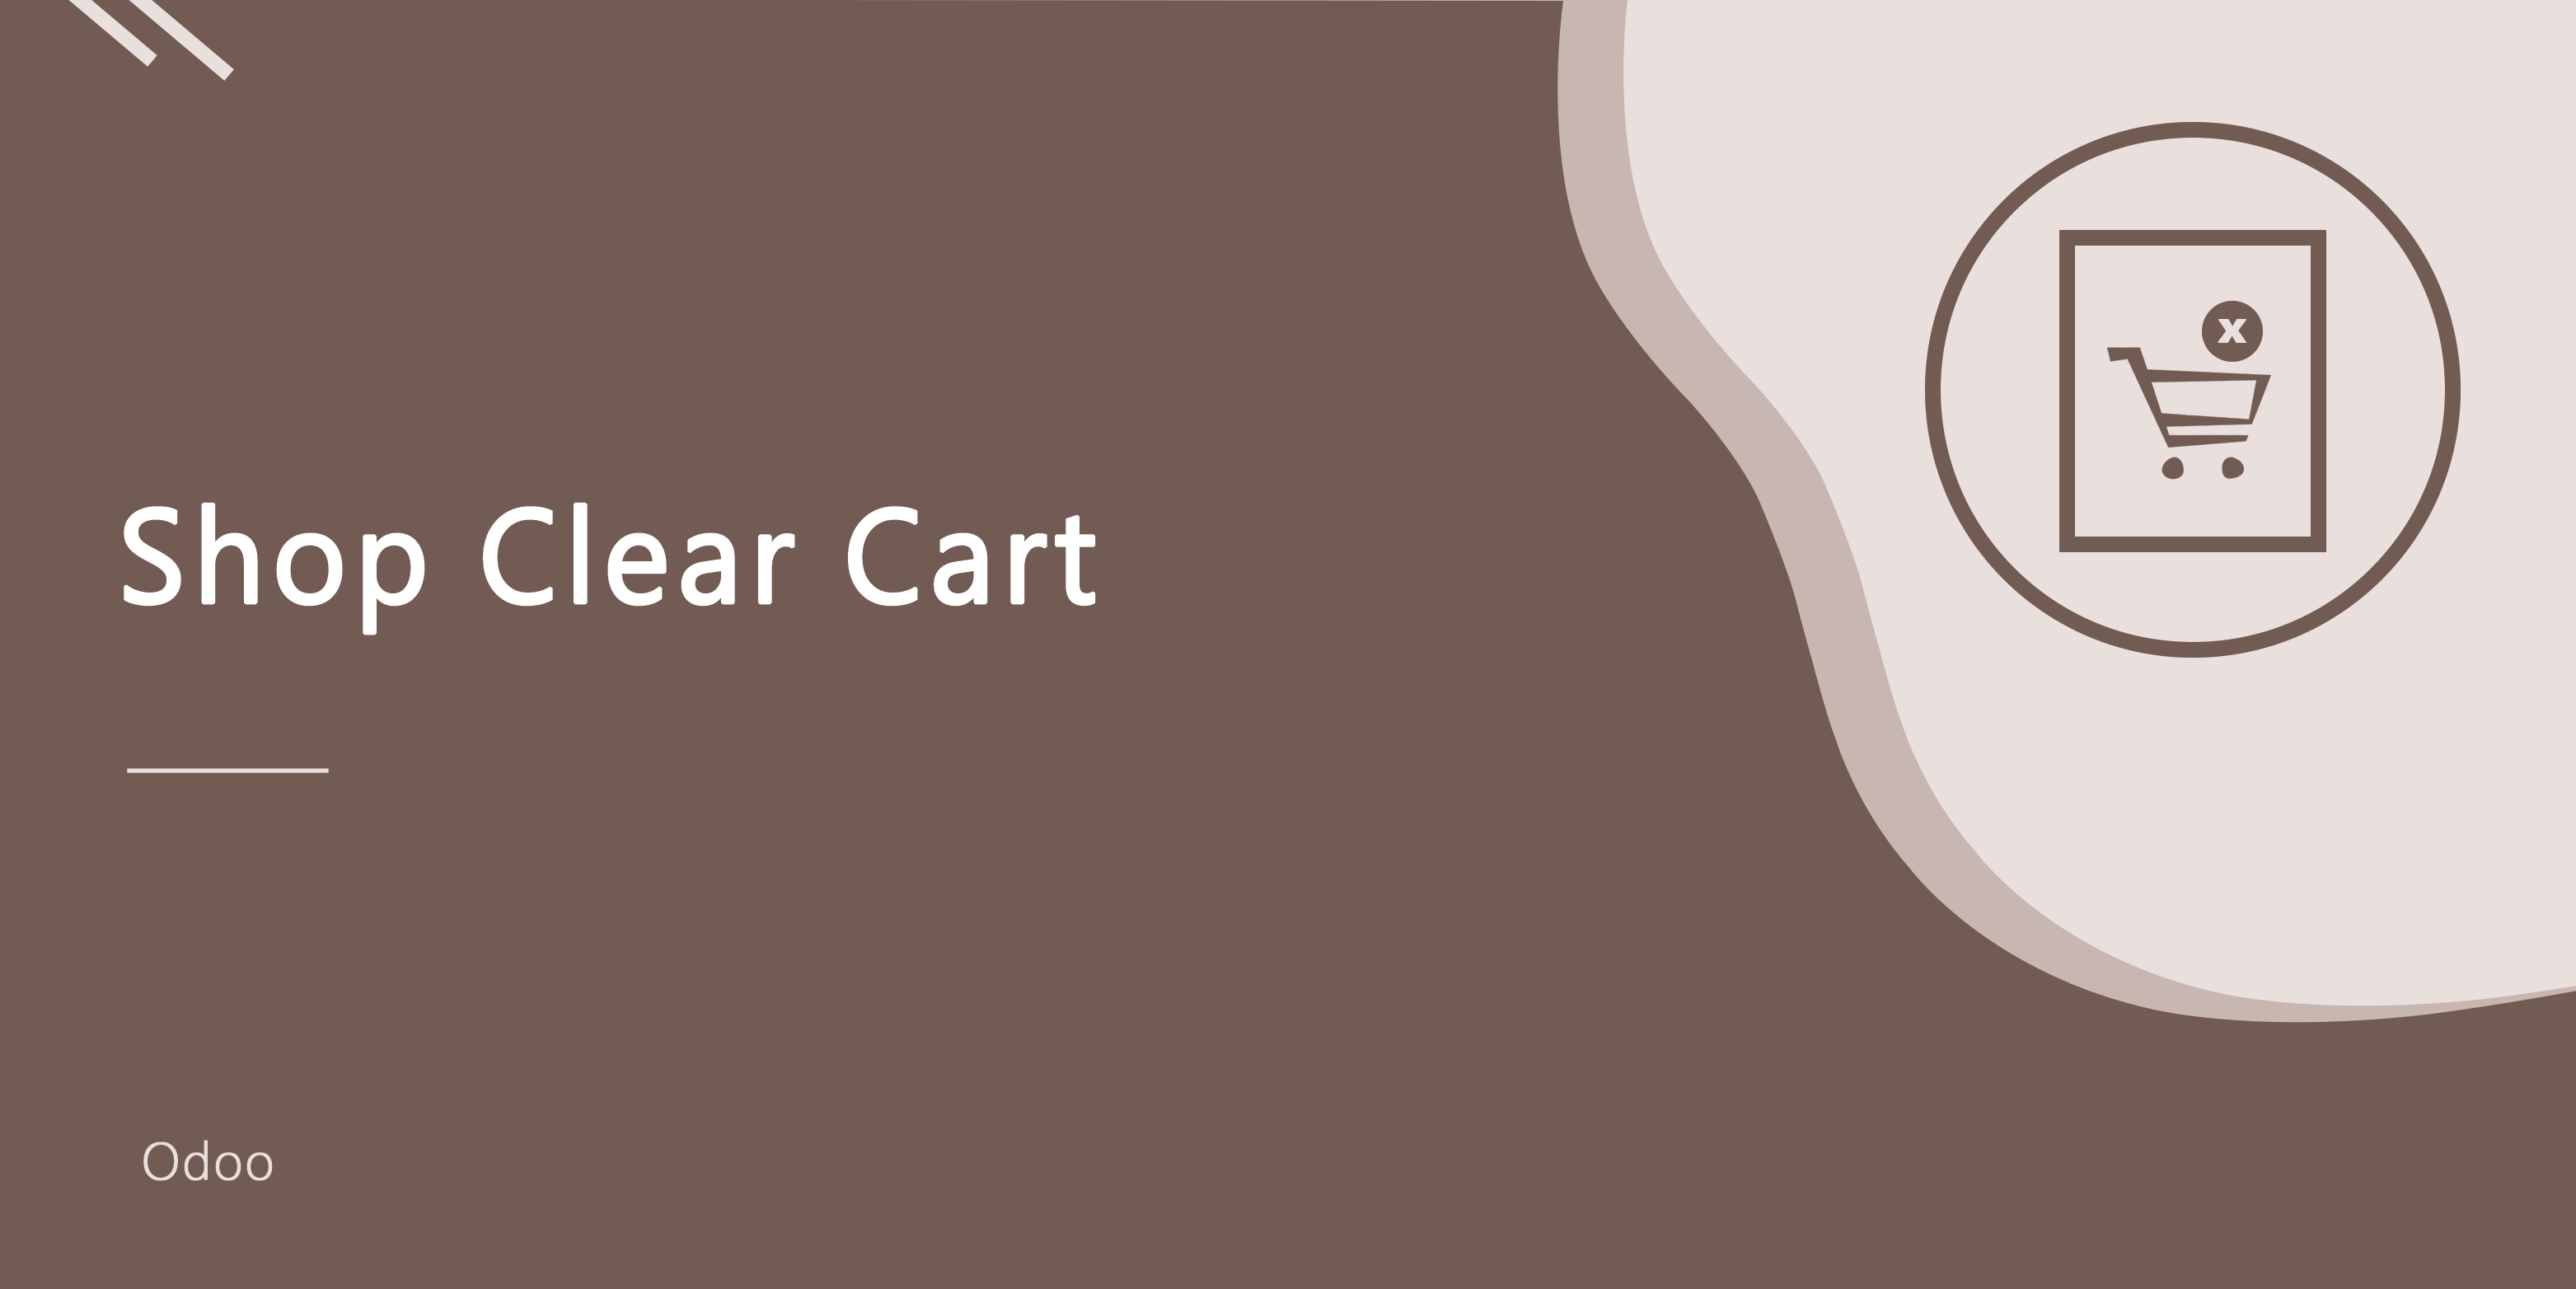 Shop Clear Cart